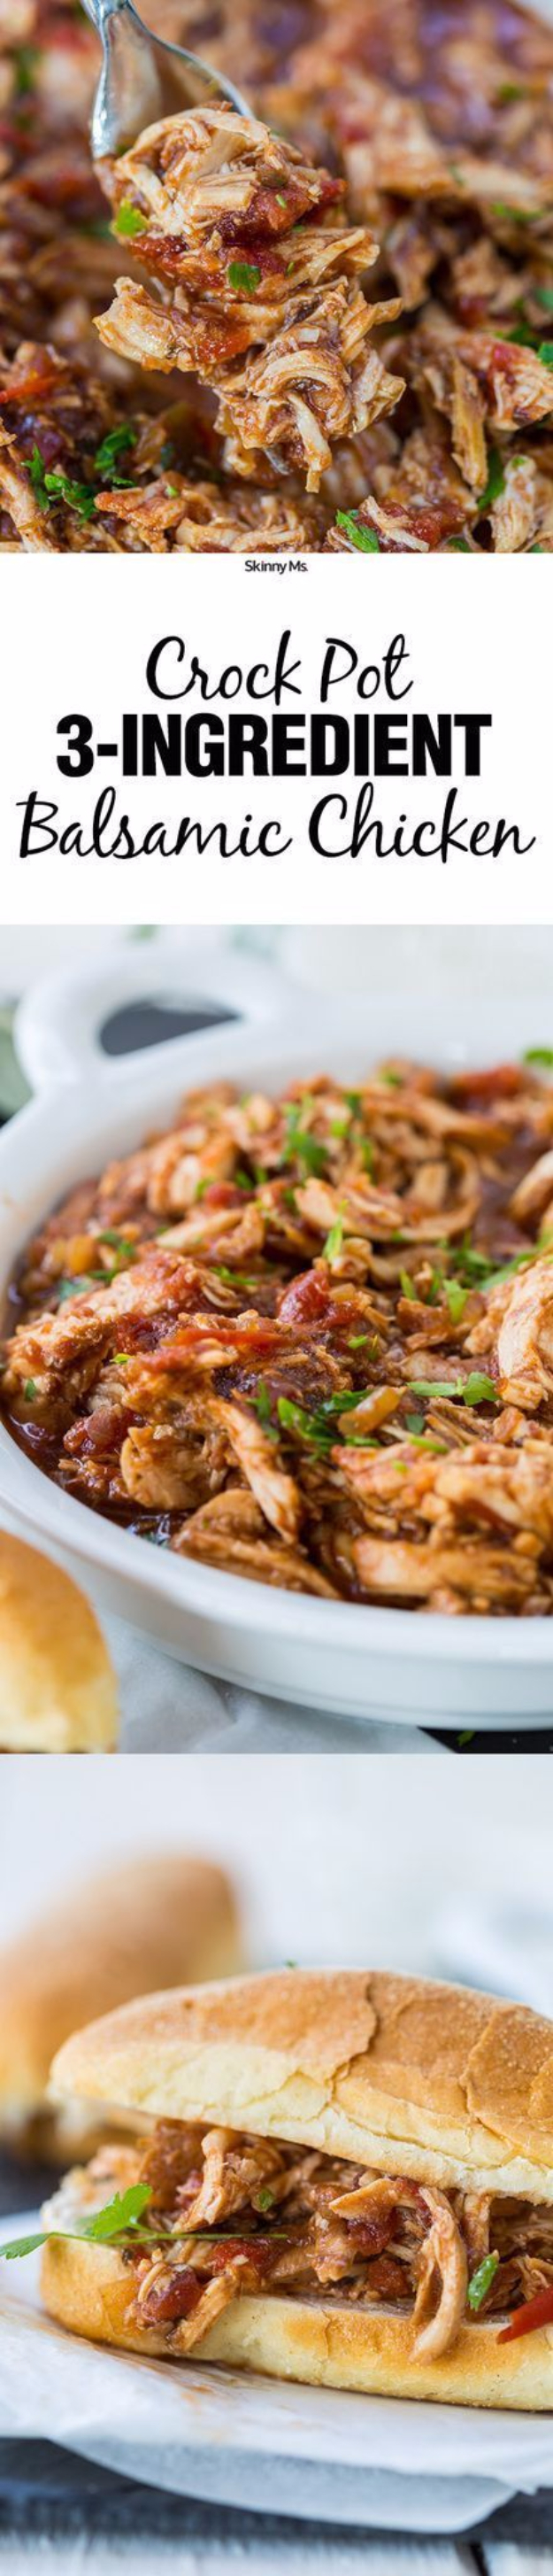 33 Easy Three Ingredient Recipes - 3 Ingredient Crock Pot Balsamic Chicken - Quick And Healthy 3 Ingredients Recipe Ideas for Breakfast, Lunch, Dinner, Appetizers, Snacks and Desserts - Cookies, Chicken, Crockpot Ideas, Baking and Microwave Recipes and Tutorials #easyrecipes #quickrecipes